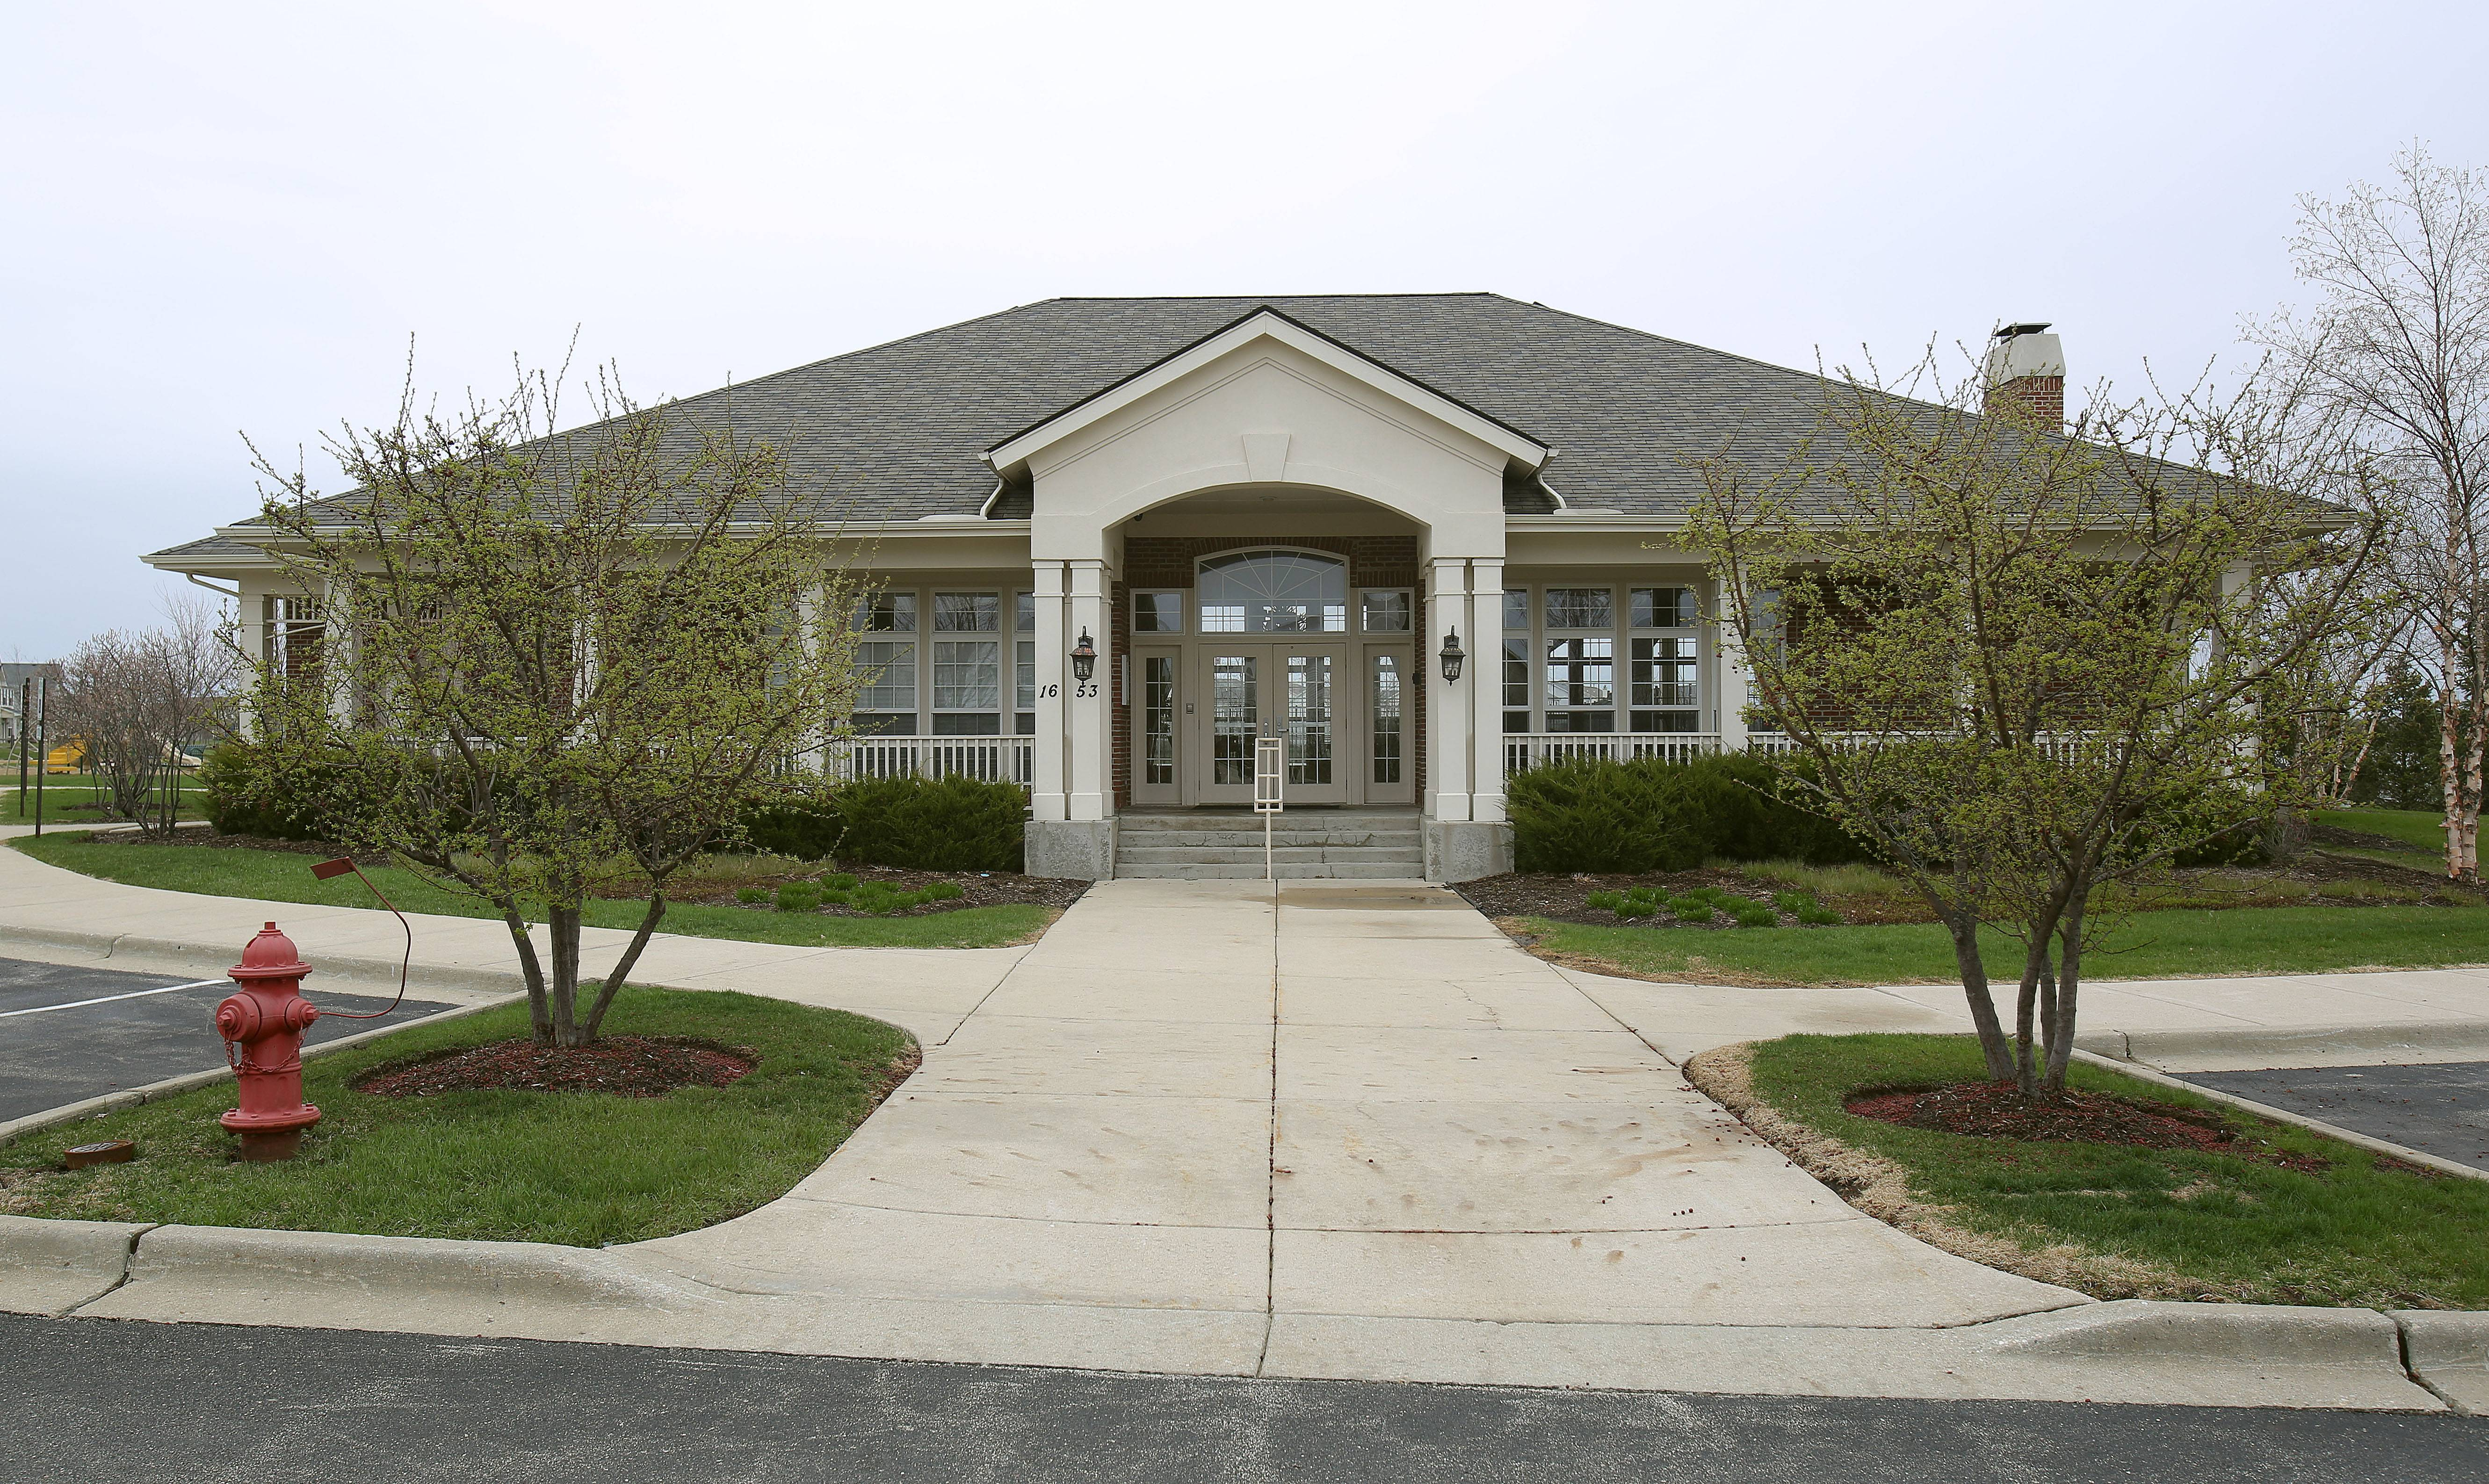 Lakewood Grove residents benefit from the use of a community clubhouse with swimming pool and tennis courts.